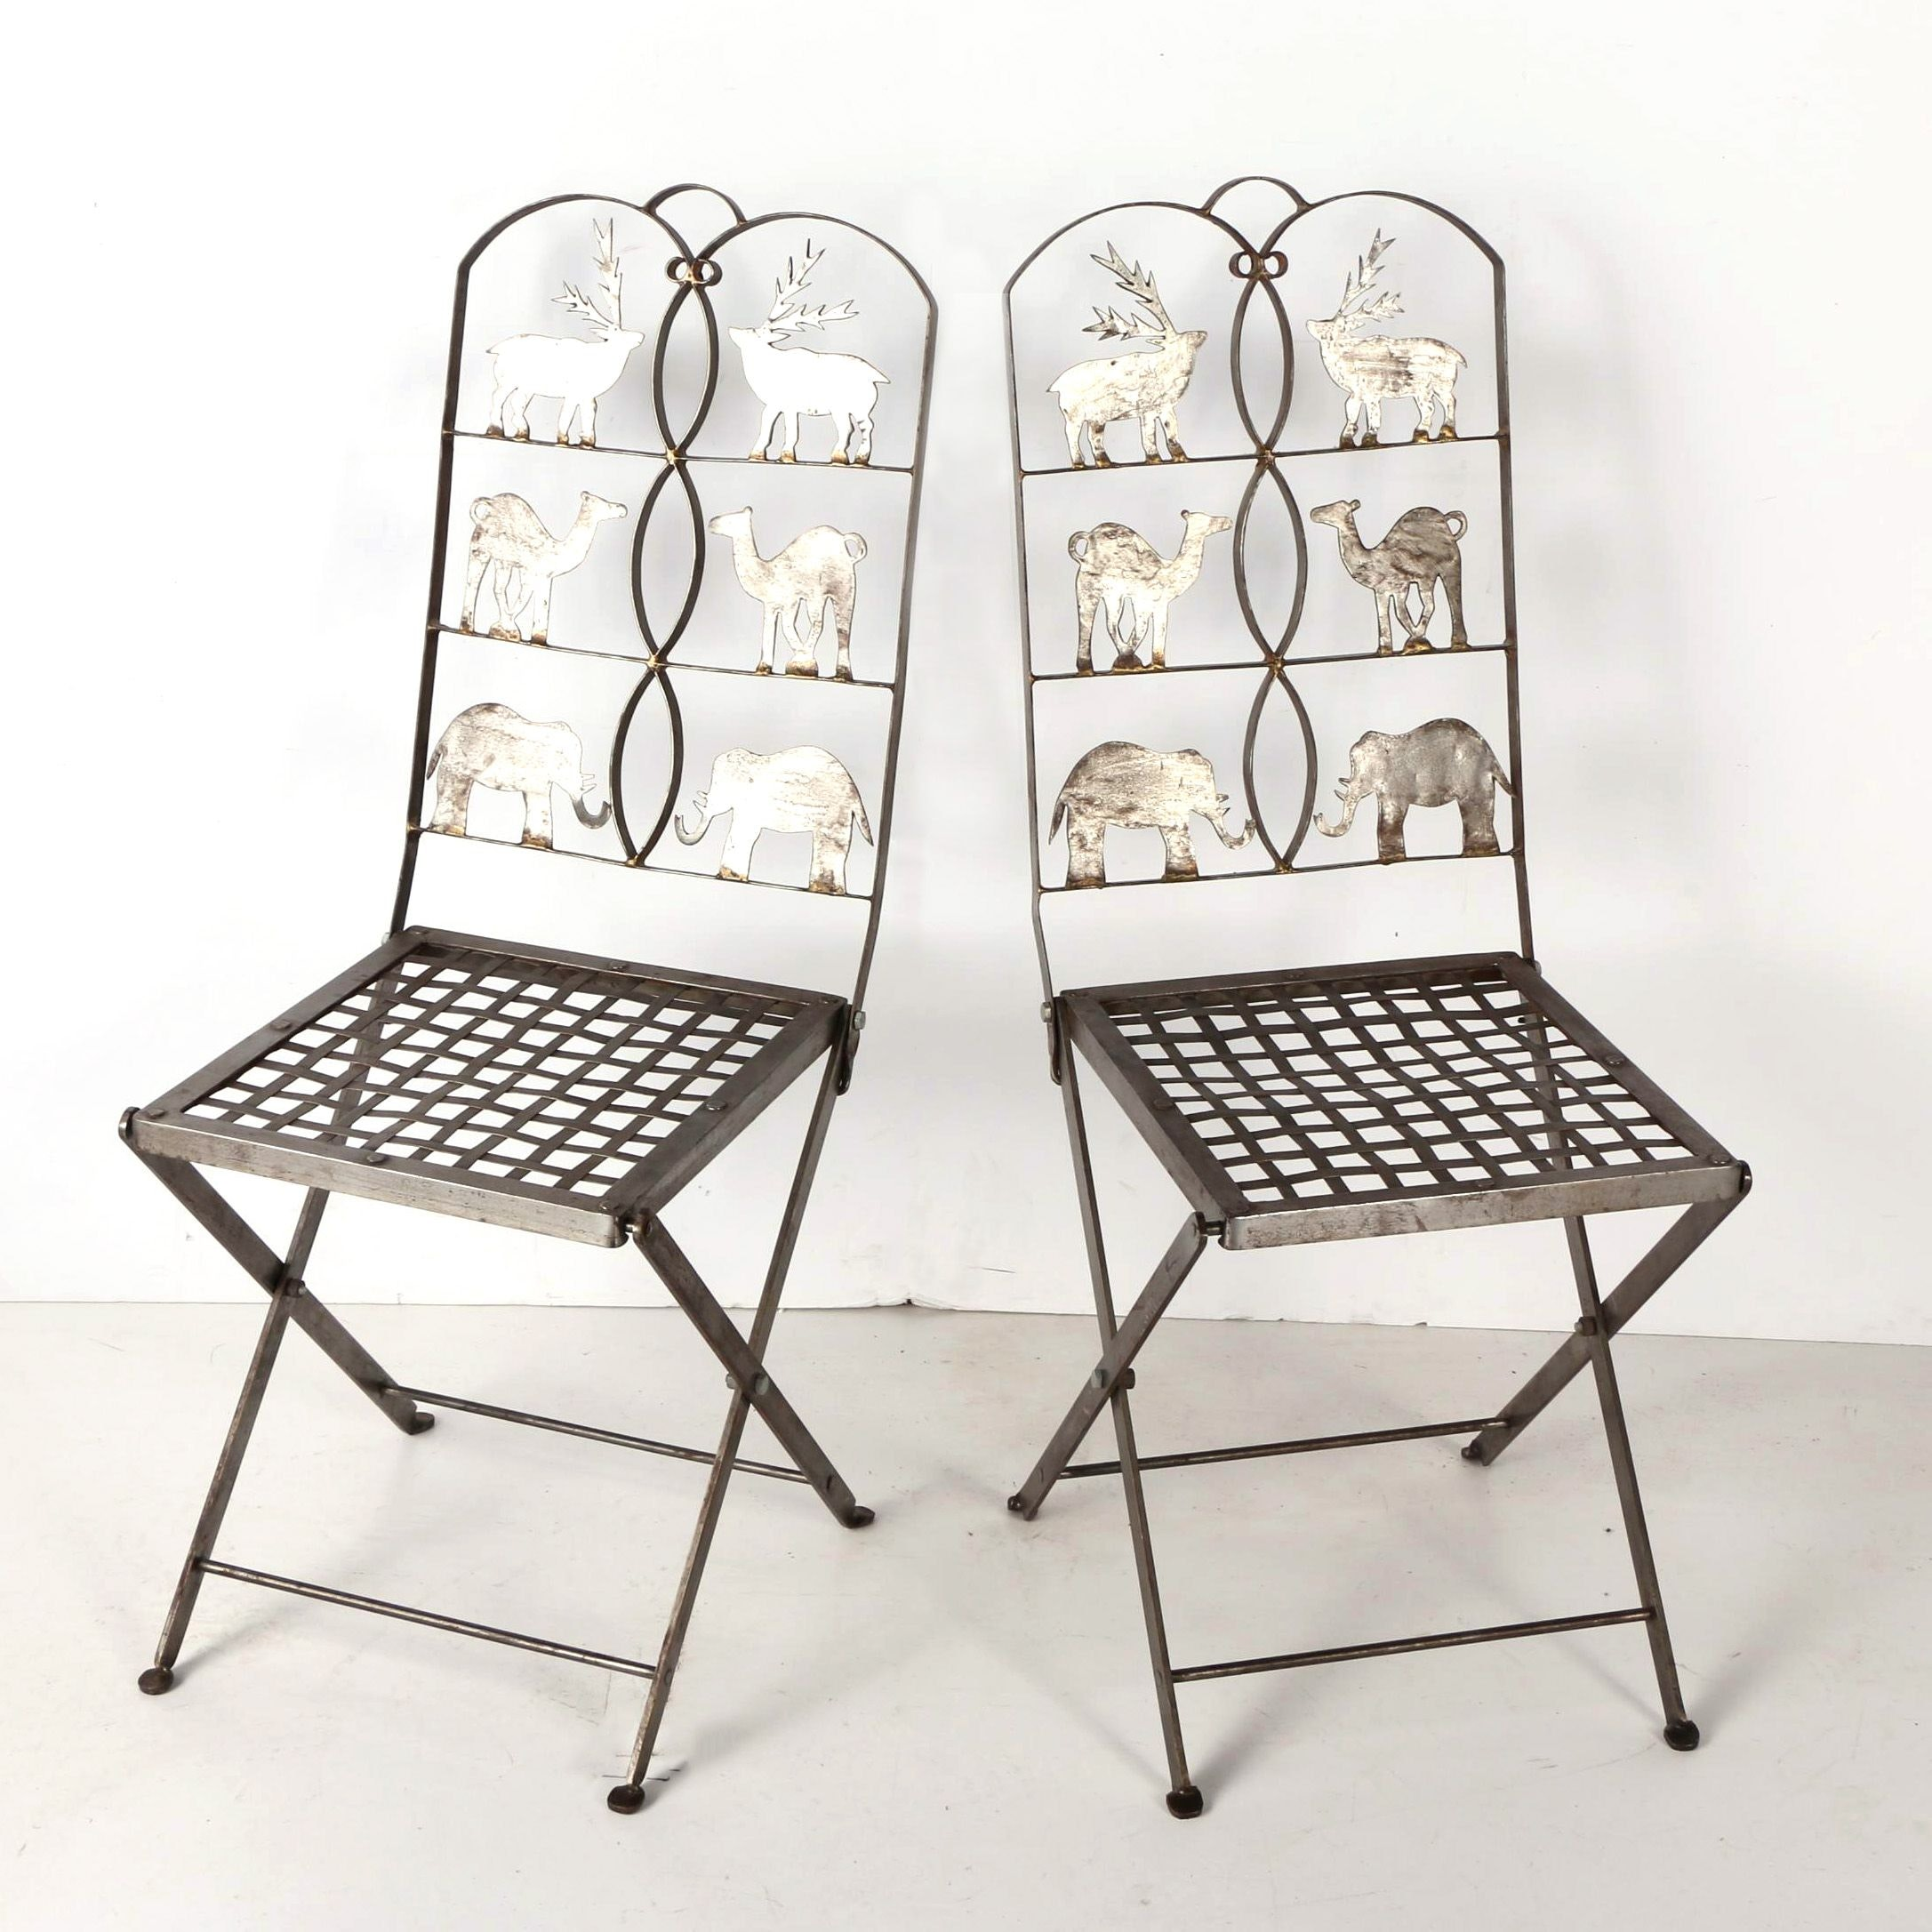 Folding Metal Chairs with Animal Motifs